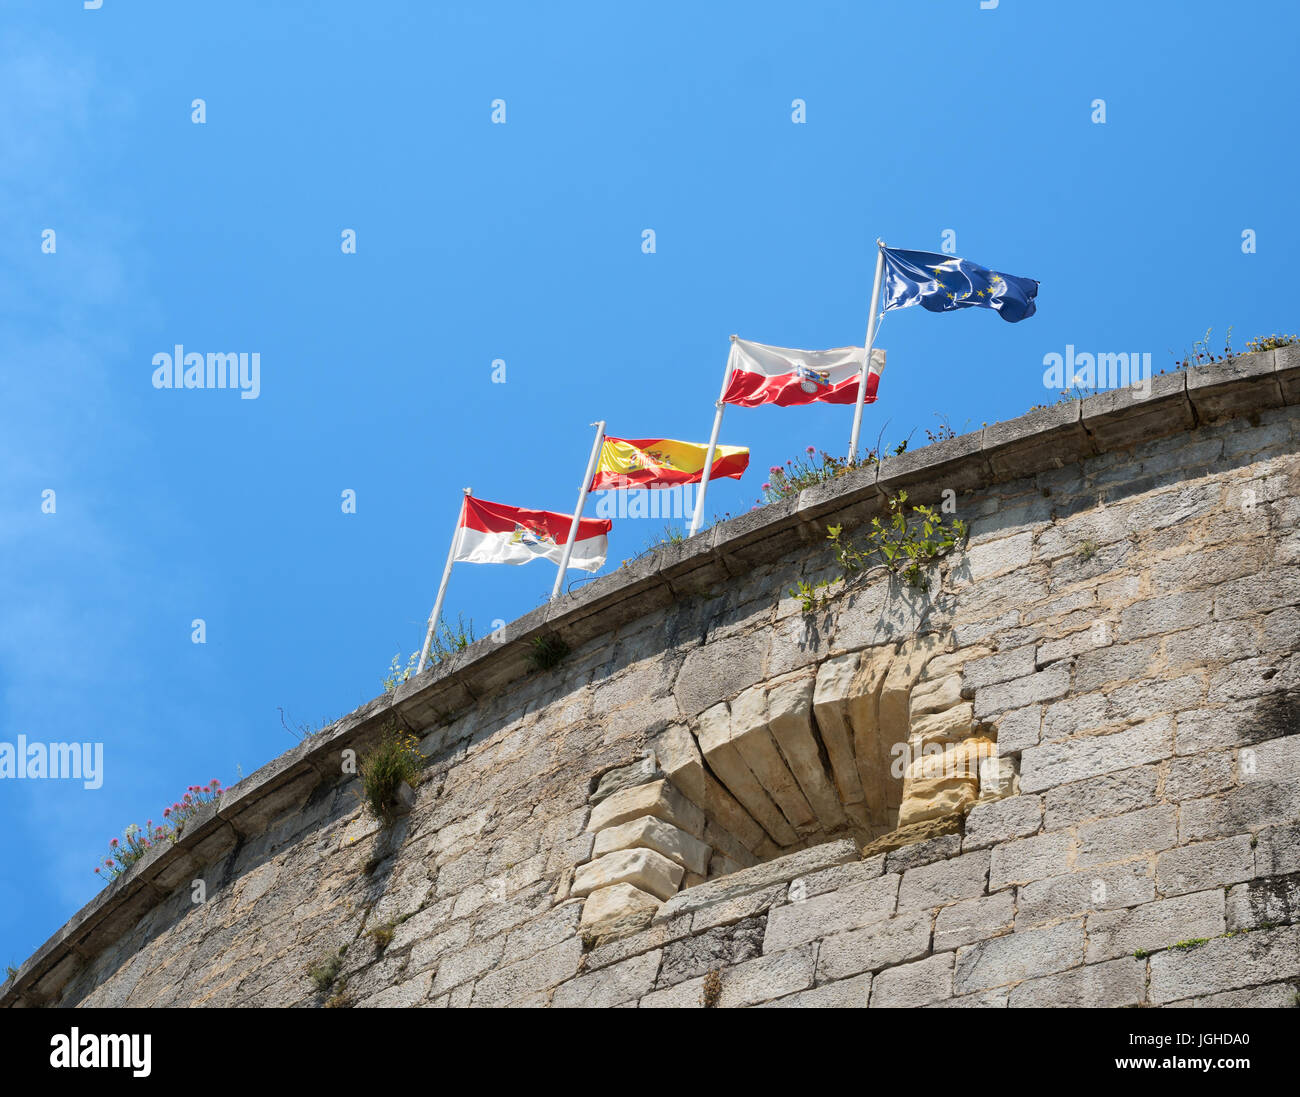 Flags flying over the Fort of San Martin, Santona, Cantabria, Spain - Stock Image